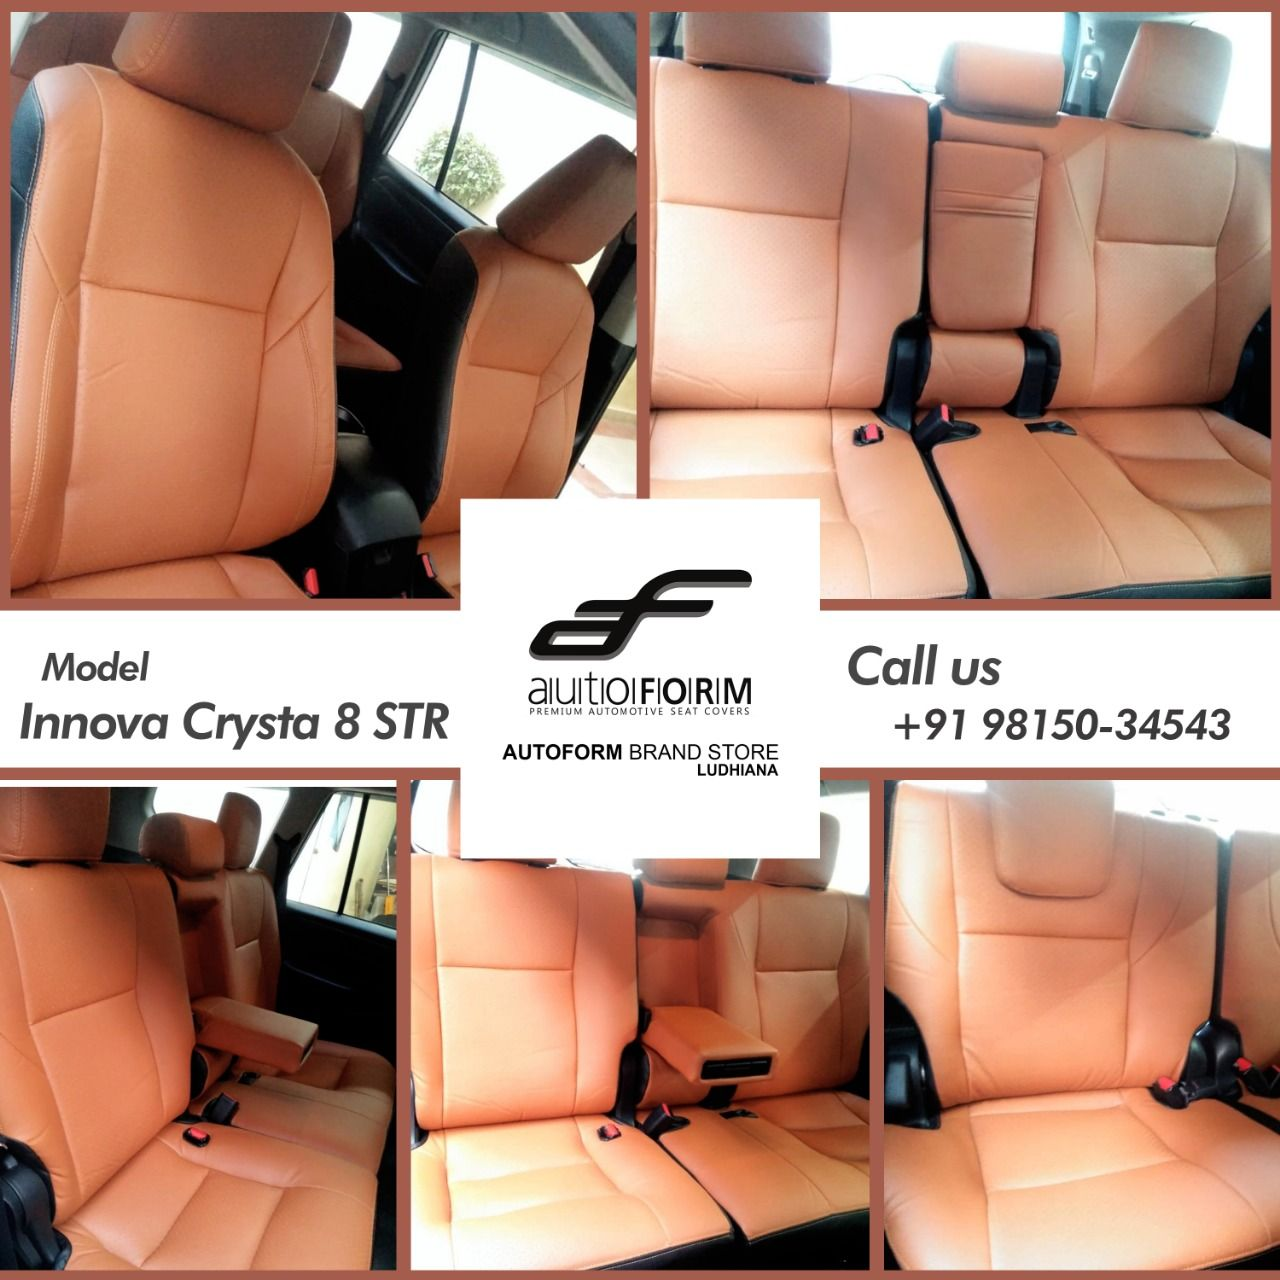 Toyota Innova Crysta 8 Str Is Packed Up With Riviera Series Tan